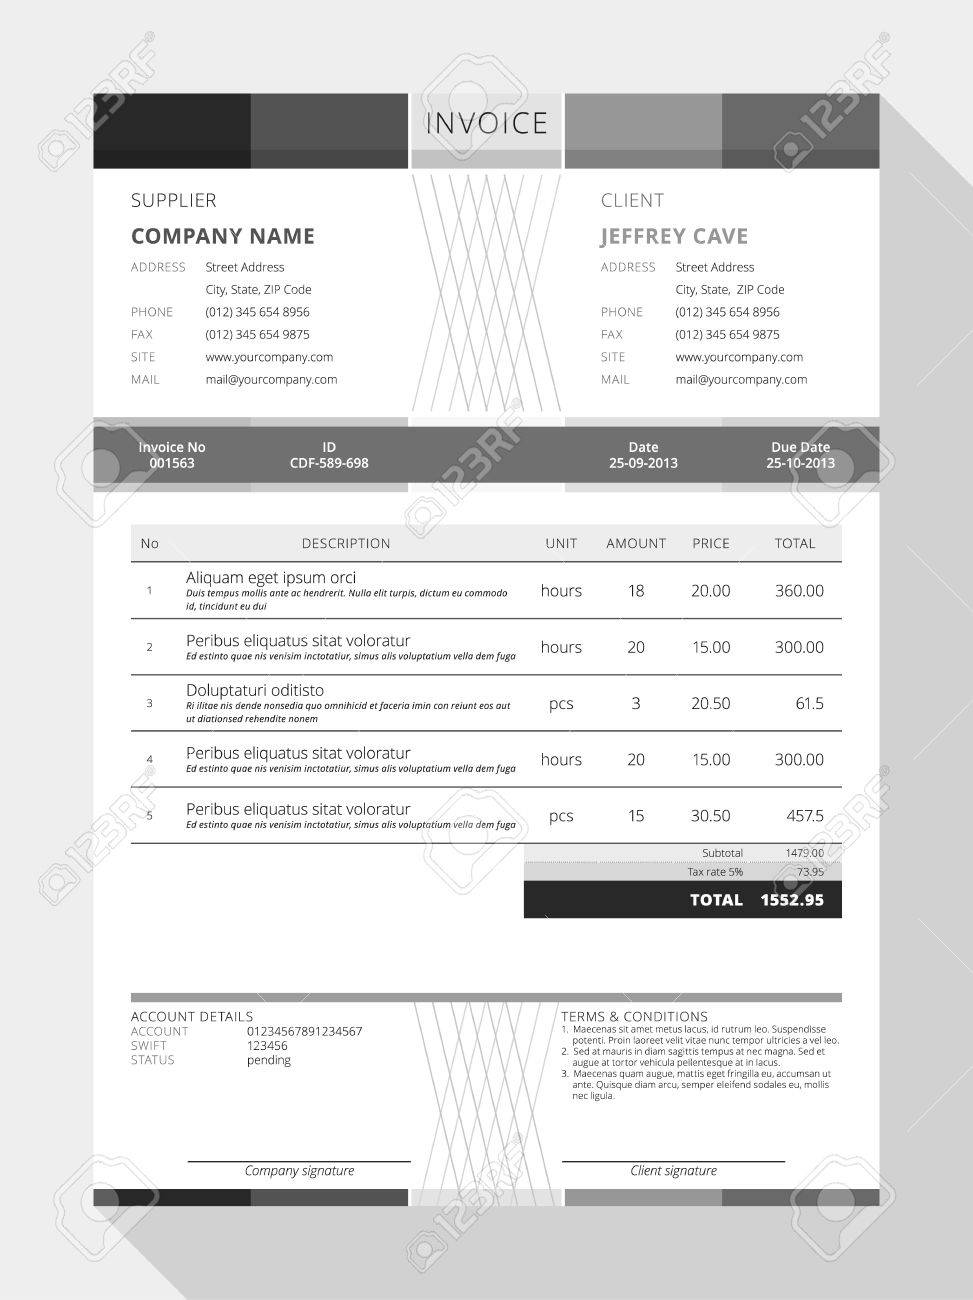 Ediblewildsus  Wonderful Design An Invoice  Professional Graphic Design Invoice  With Remarkable Vector Customizable Invoice Form Template Design Vector   Design An Invoice With Attractive Excel Invoice Templates Free Download Also Sales Invoicing In Addition Invoice Timesheet Template And Free Quote And Invoice Software As Well As Invoice Template Pdf Download Additionally Sample Invoices With Payment Terms From Happytomco With Ediblewildsus  Remarkable Design An Invoice  Professional Graphic Design Invoice  With Attractive Vector Customizable Invoice Form Template Design Vector   Design An Invoice And Wonderful Excel Invoice Templates Free Download Also Sales Invoicing In Addition Invoice Timesheet Template From Happytomco